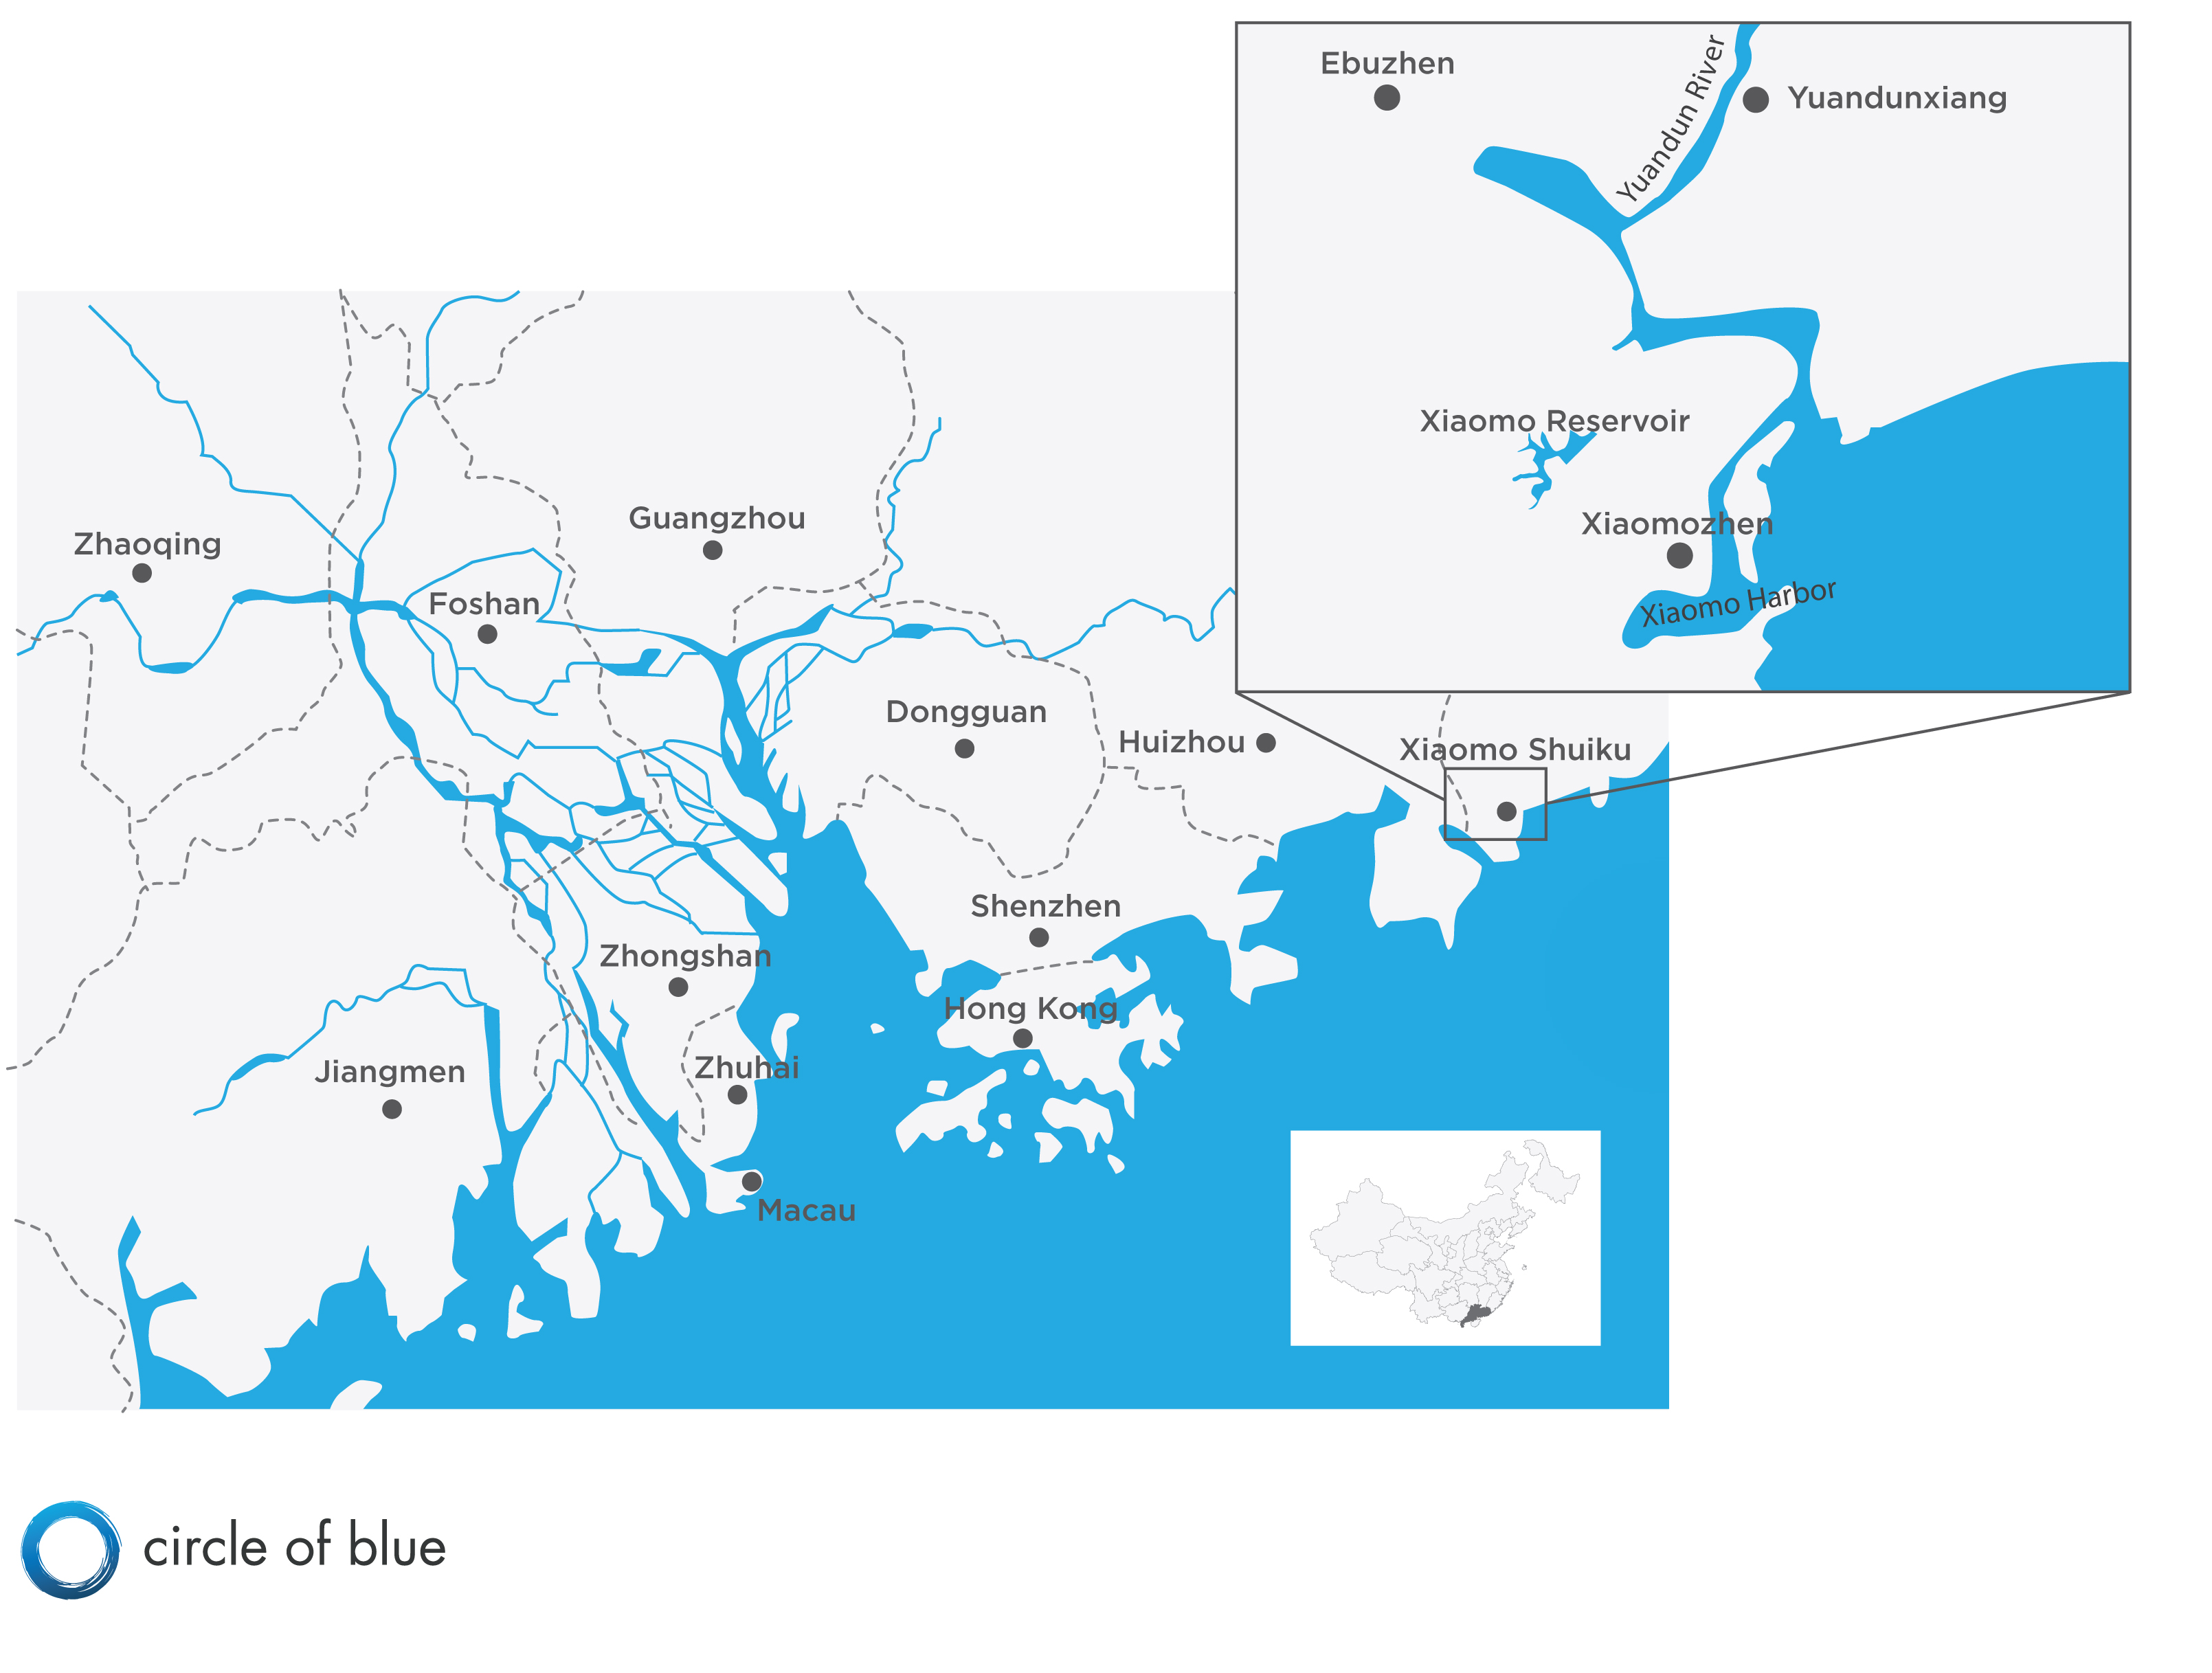 Shenzhens new path to sustainability is crowded with obstacles map infographic pearl river delta china shenzhen circle of blue economic development gumiabroncs Image collections